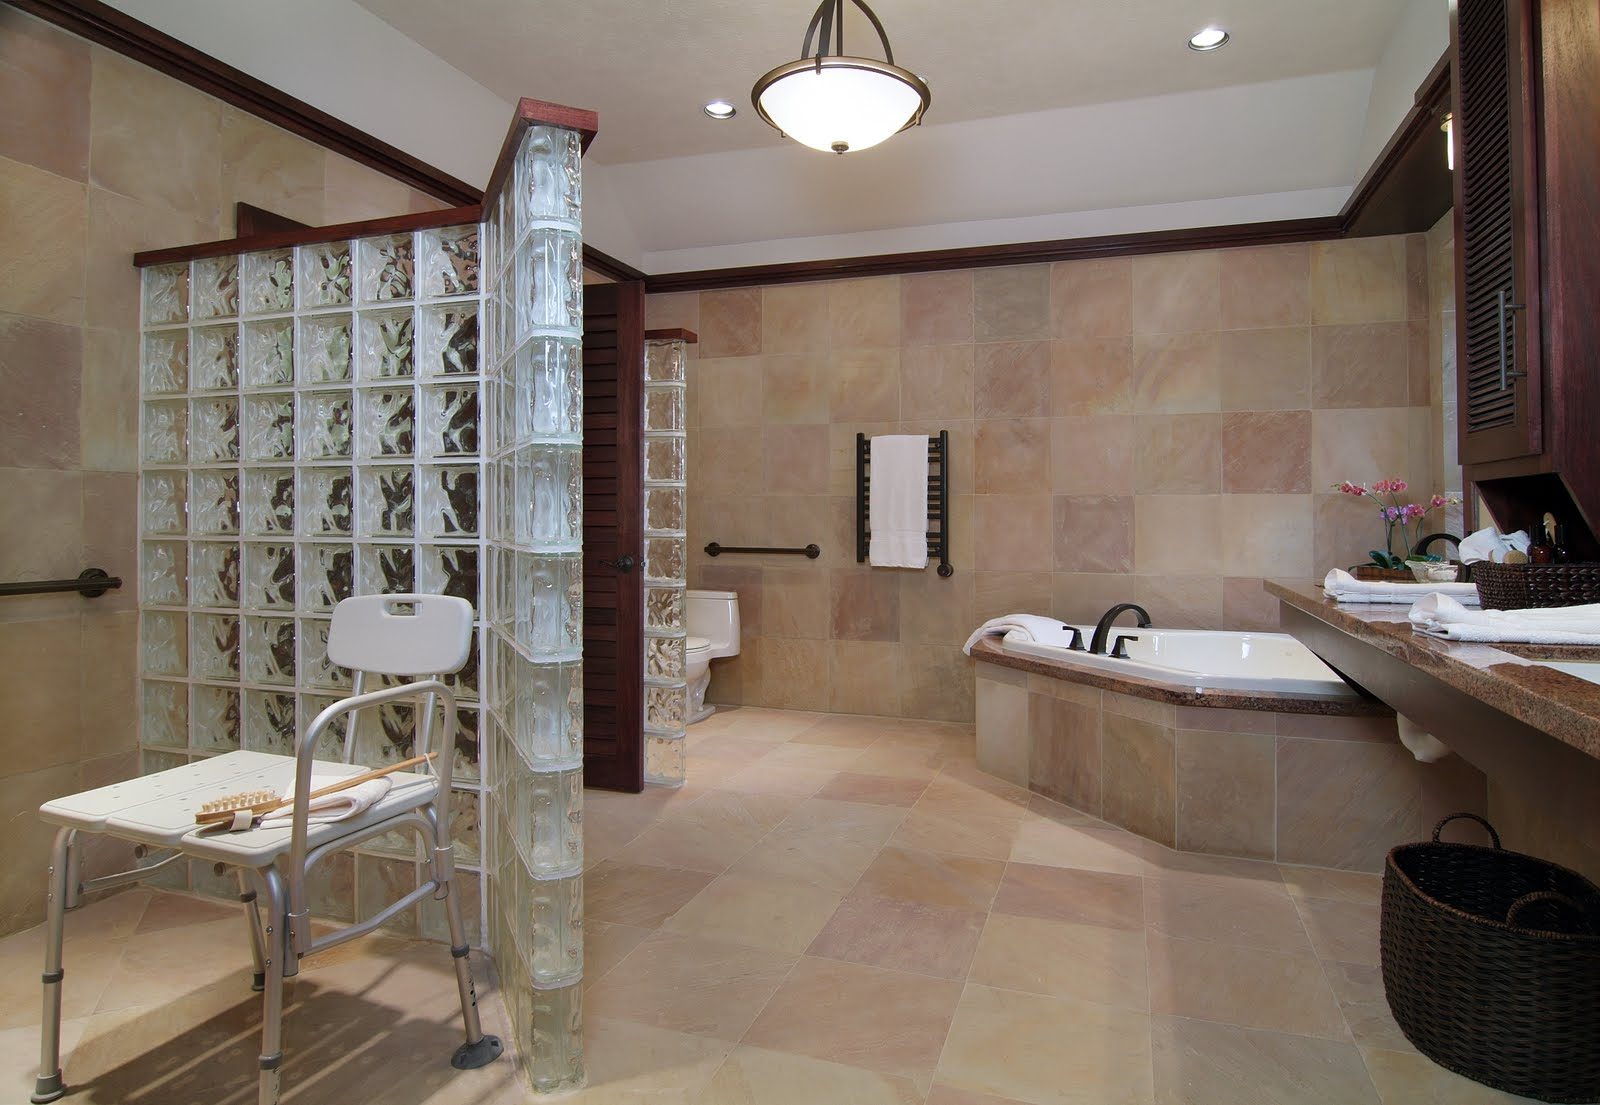 bathroom remodel designed for a wheelchair user